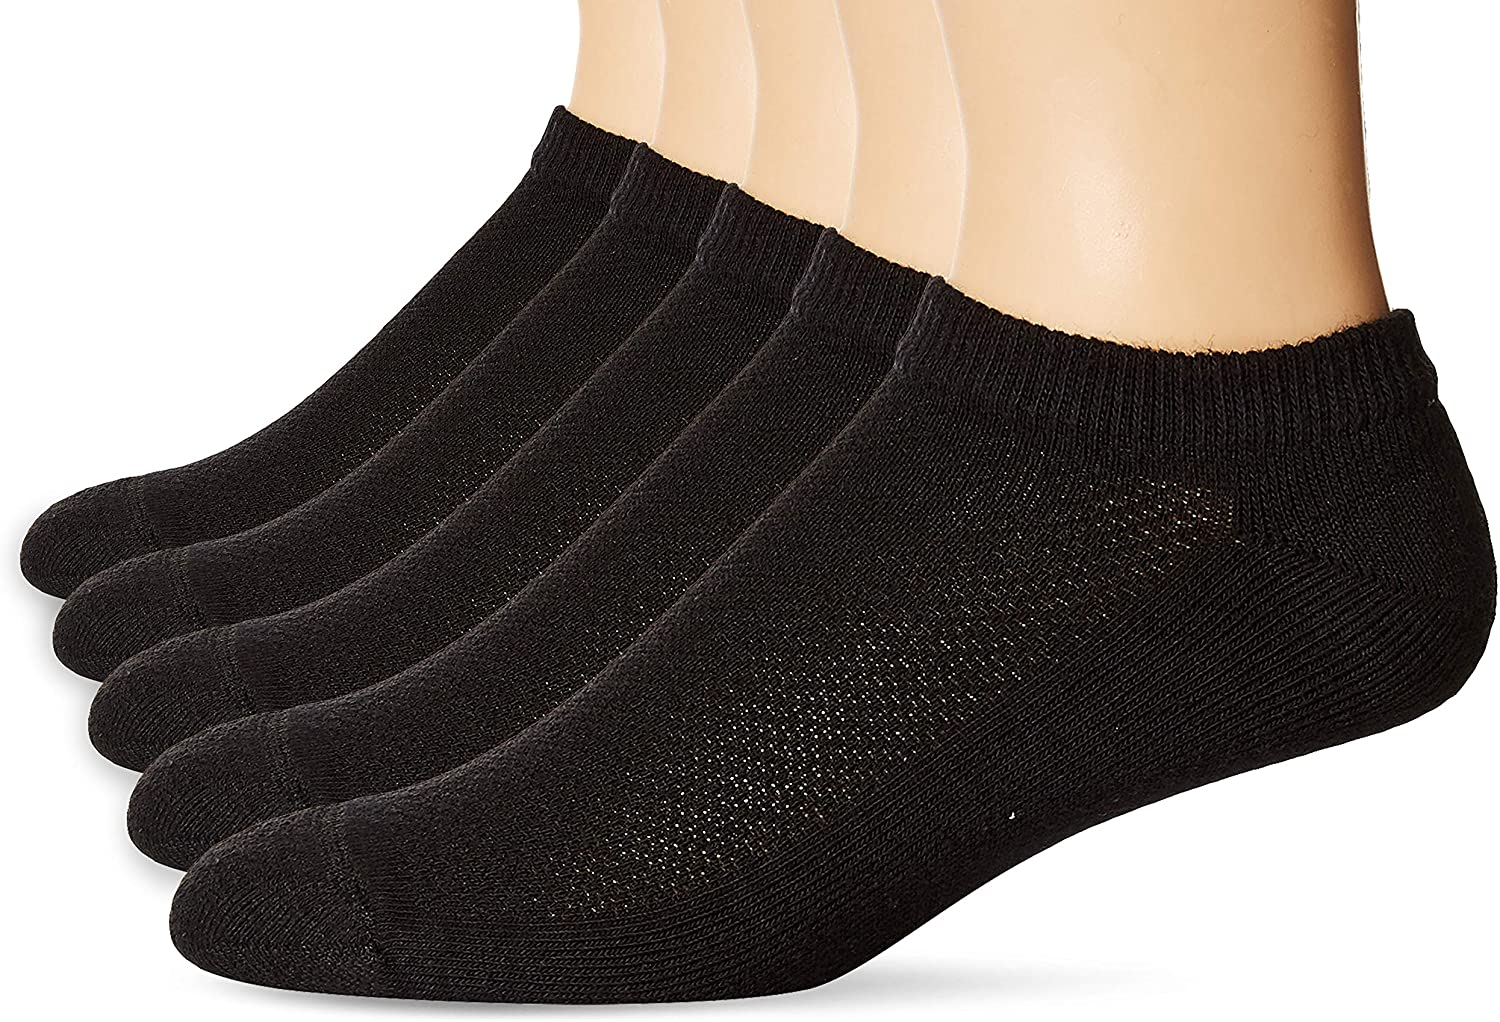 Hanes Men's 5-Pack Ultimate FreshIQ X-Temp No S Free shipping anywhere in the nation Show Shoe Indianapolis Mall Socks